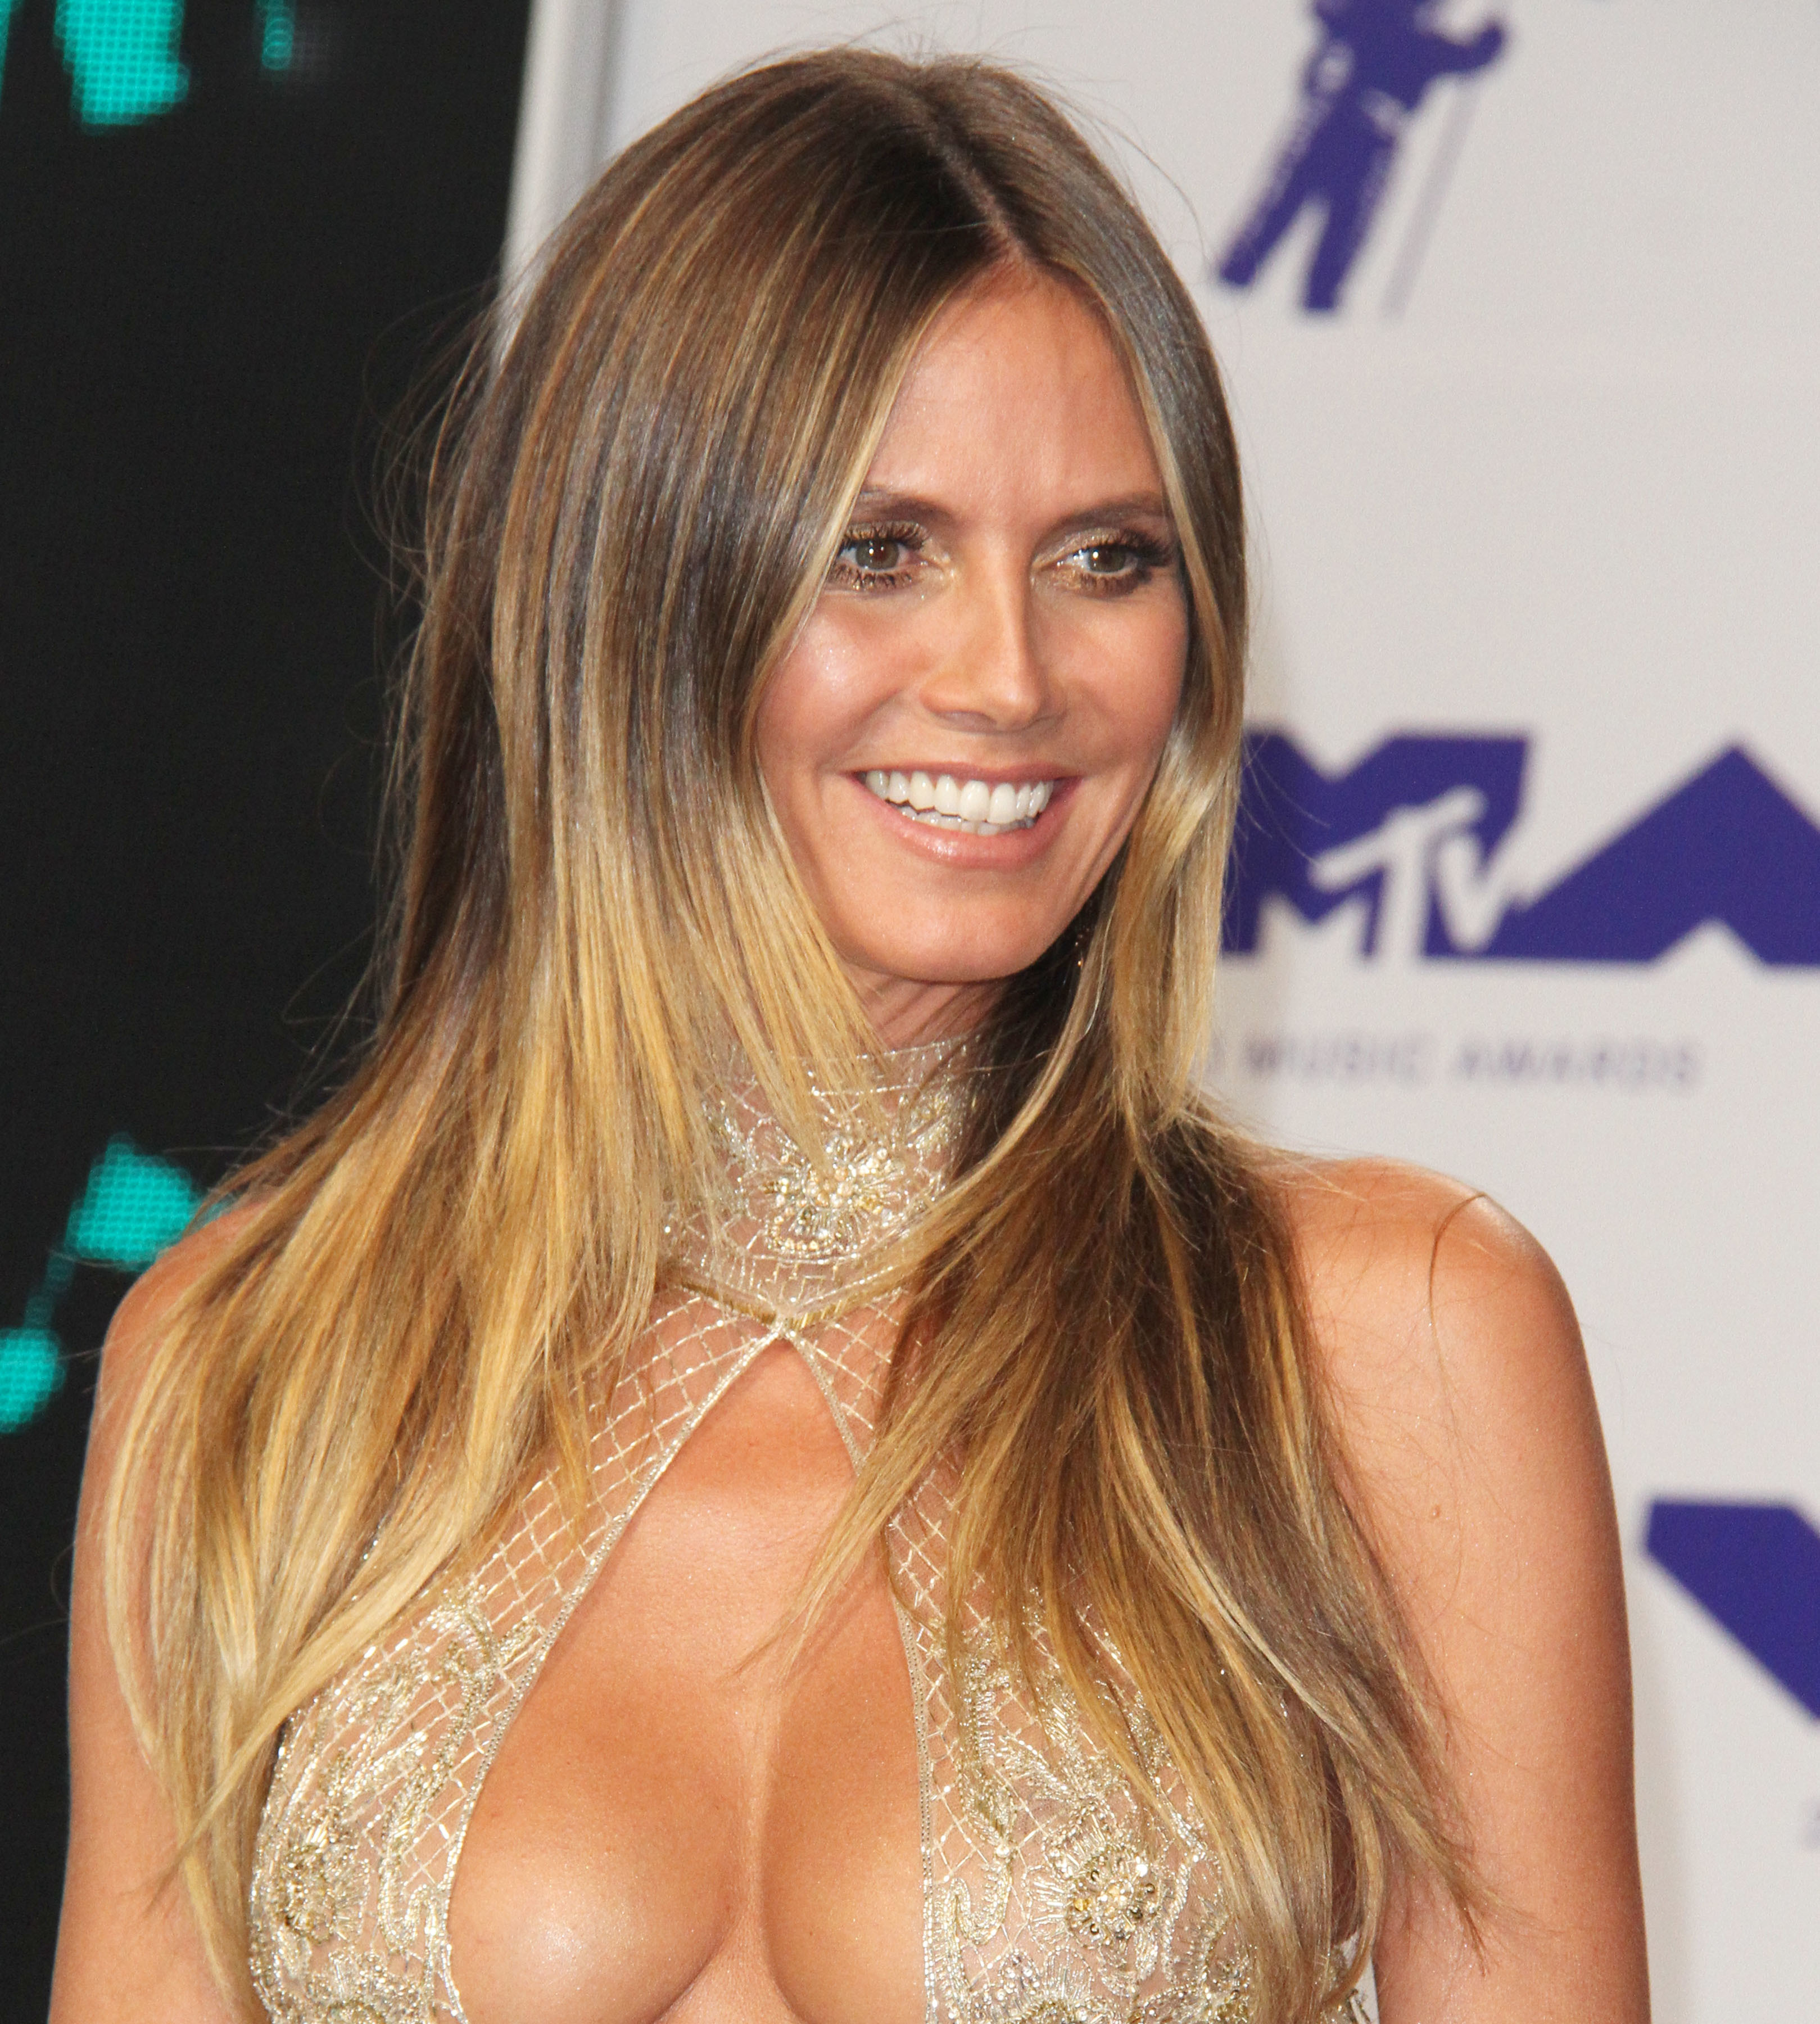 MTV Video Music Awards (VMA) 2017 Arrivals held at the Forum in Inglewood, California.  Featuring: Heidi Klum Where: Los Angeles, California, United States When: 26 Aug 2017 Credit: Adriana M. Barraza/WENN.com